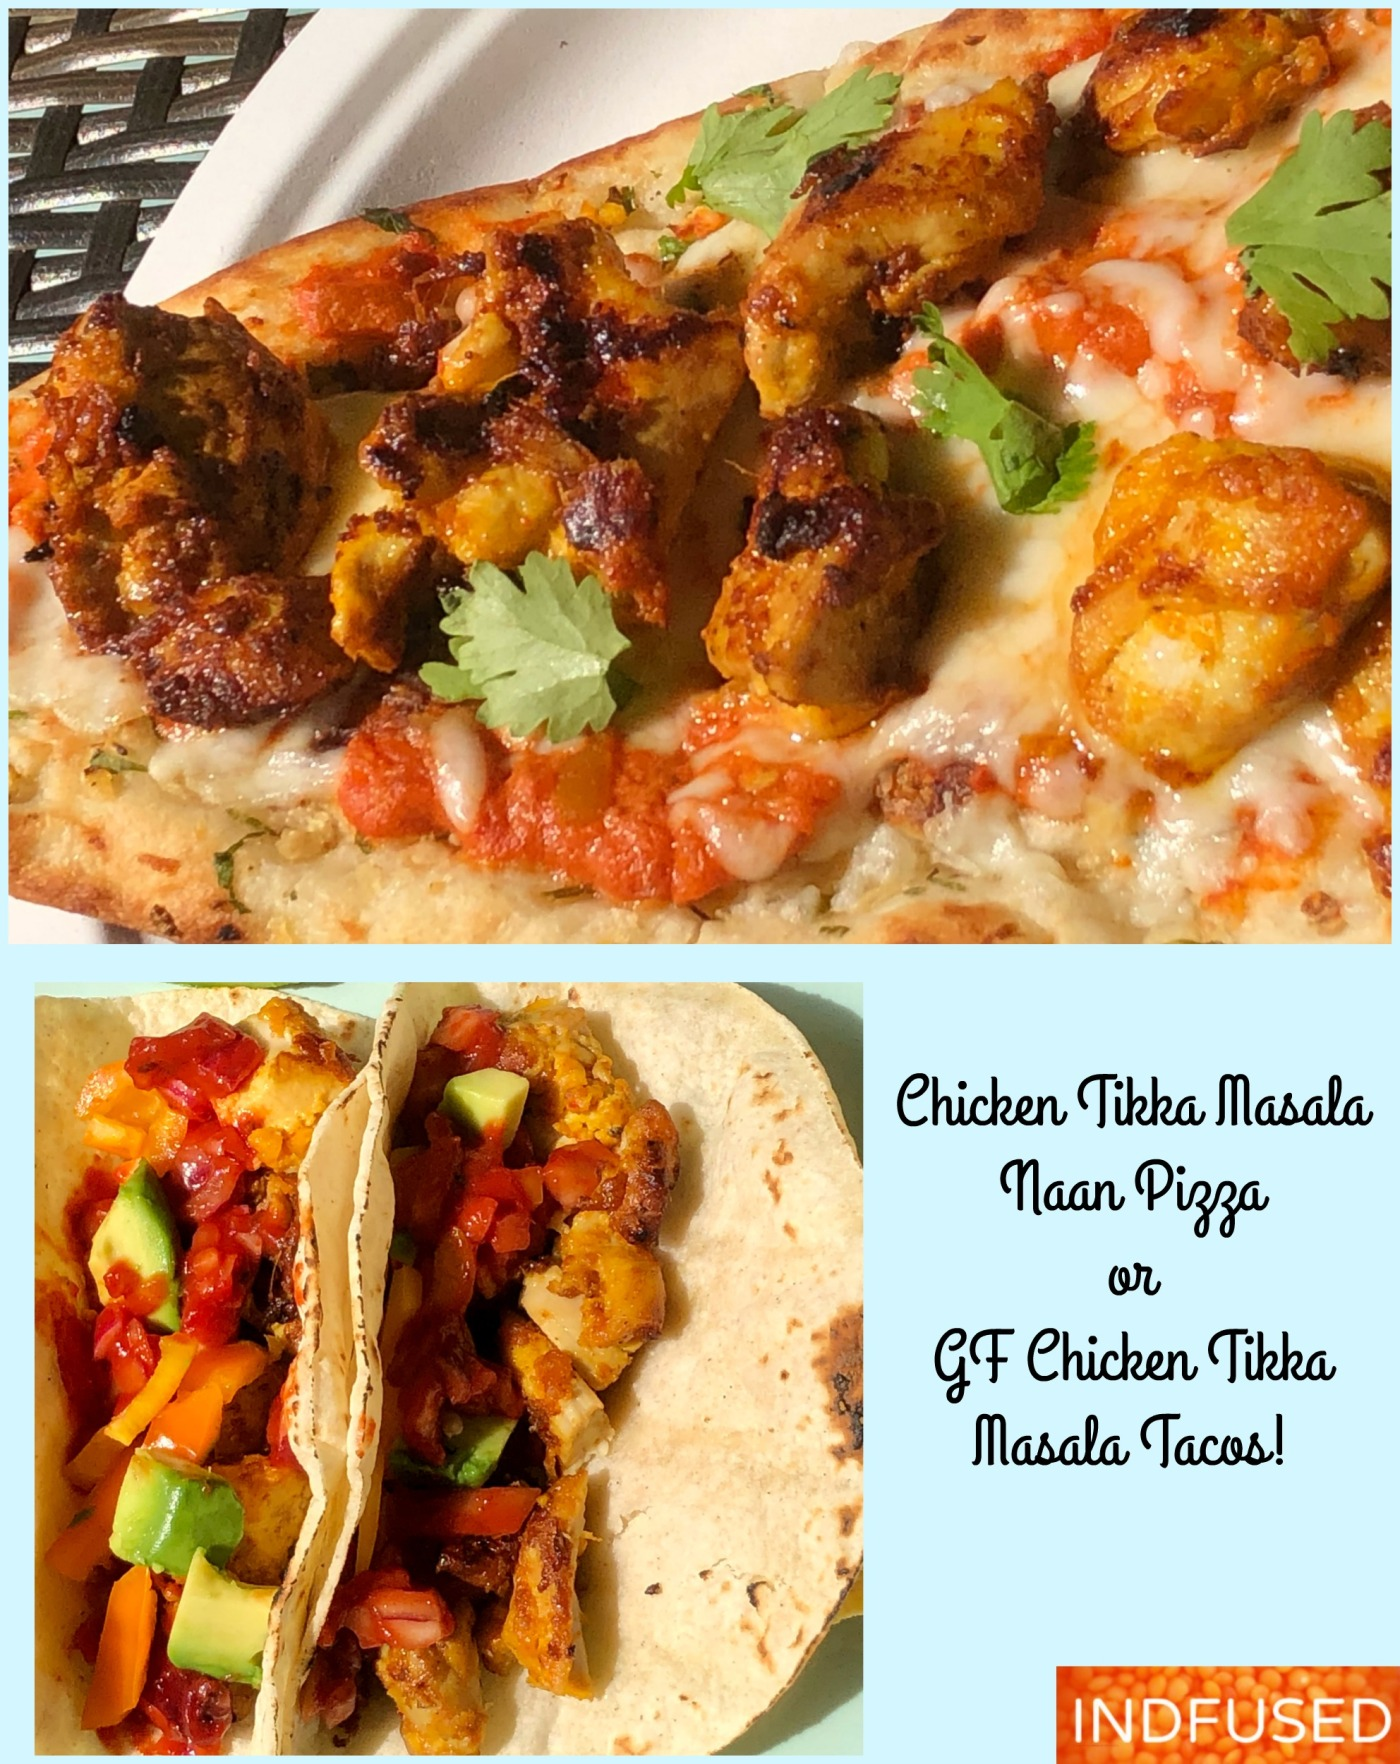 Join us on this one hour Cook Along and enjoy this delicious pizza or gluten free tacos!